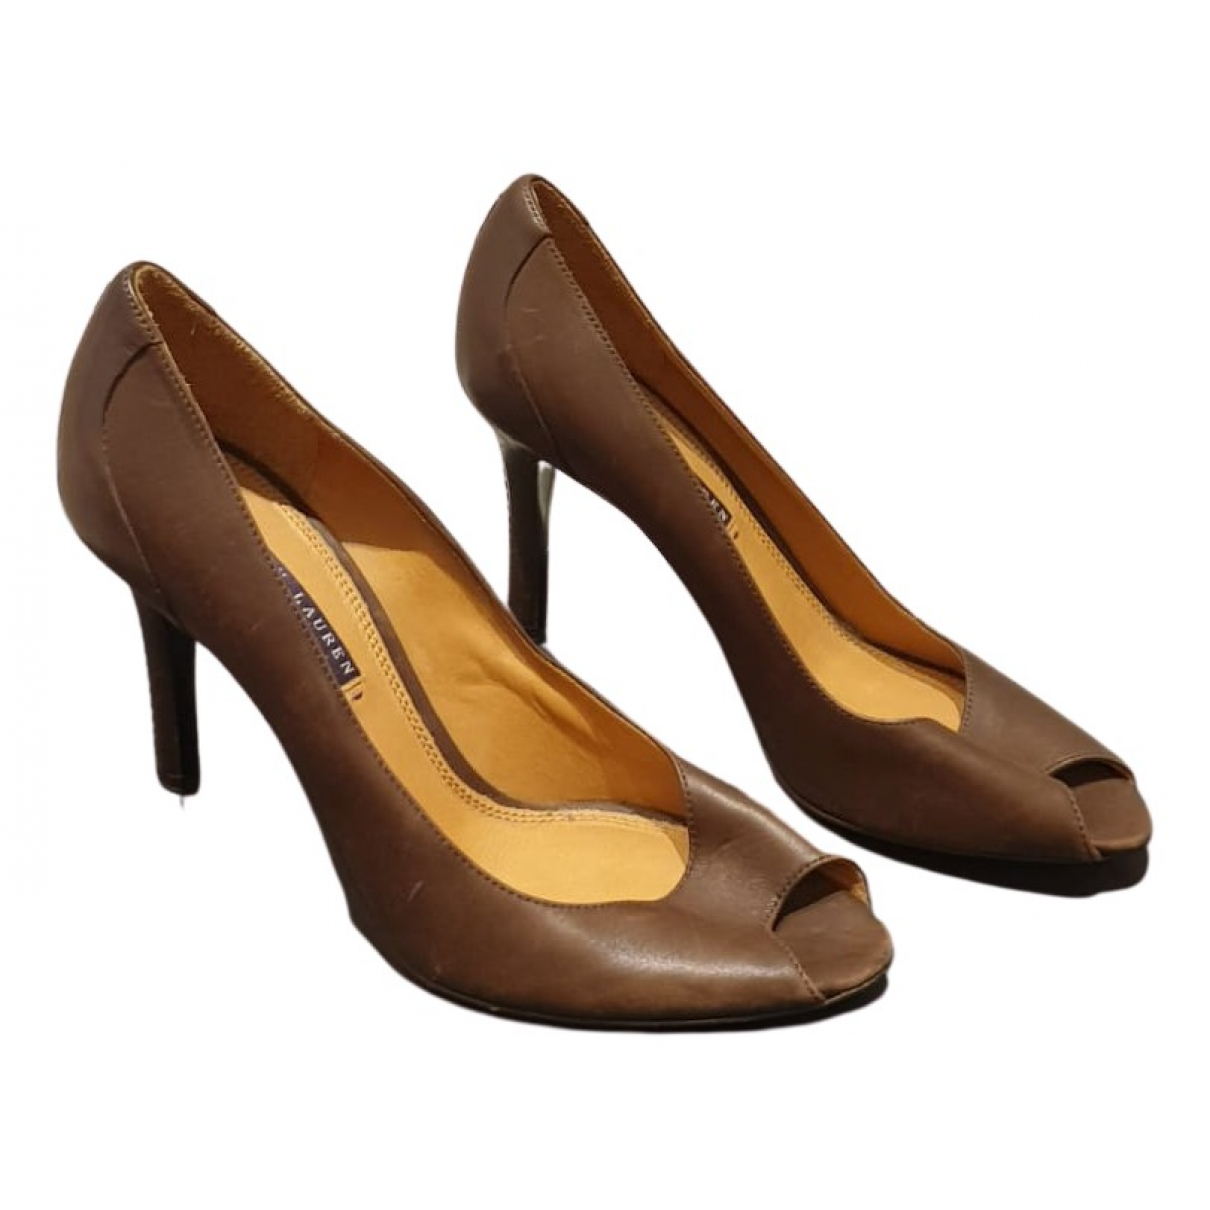 Ralph Lauren \N Pumps in  Braun Leder